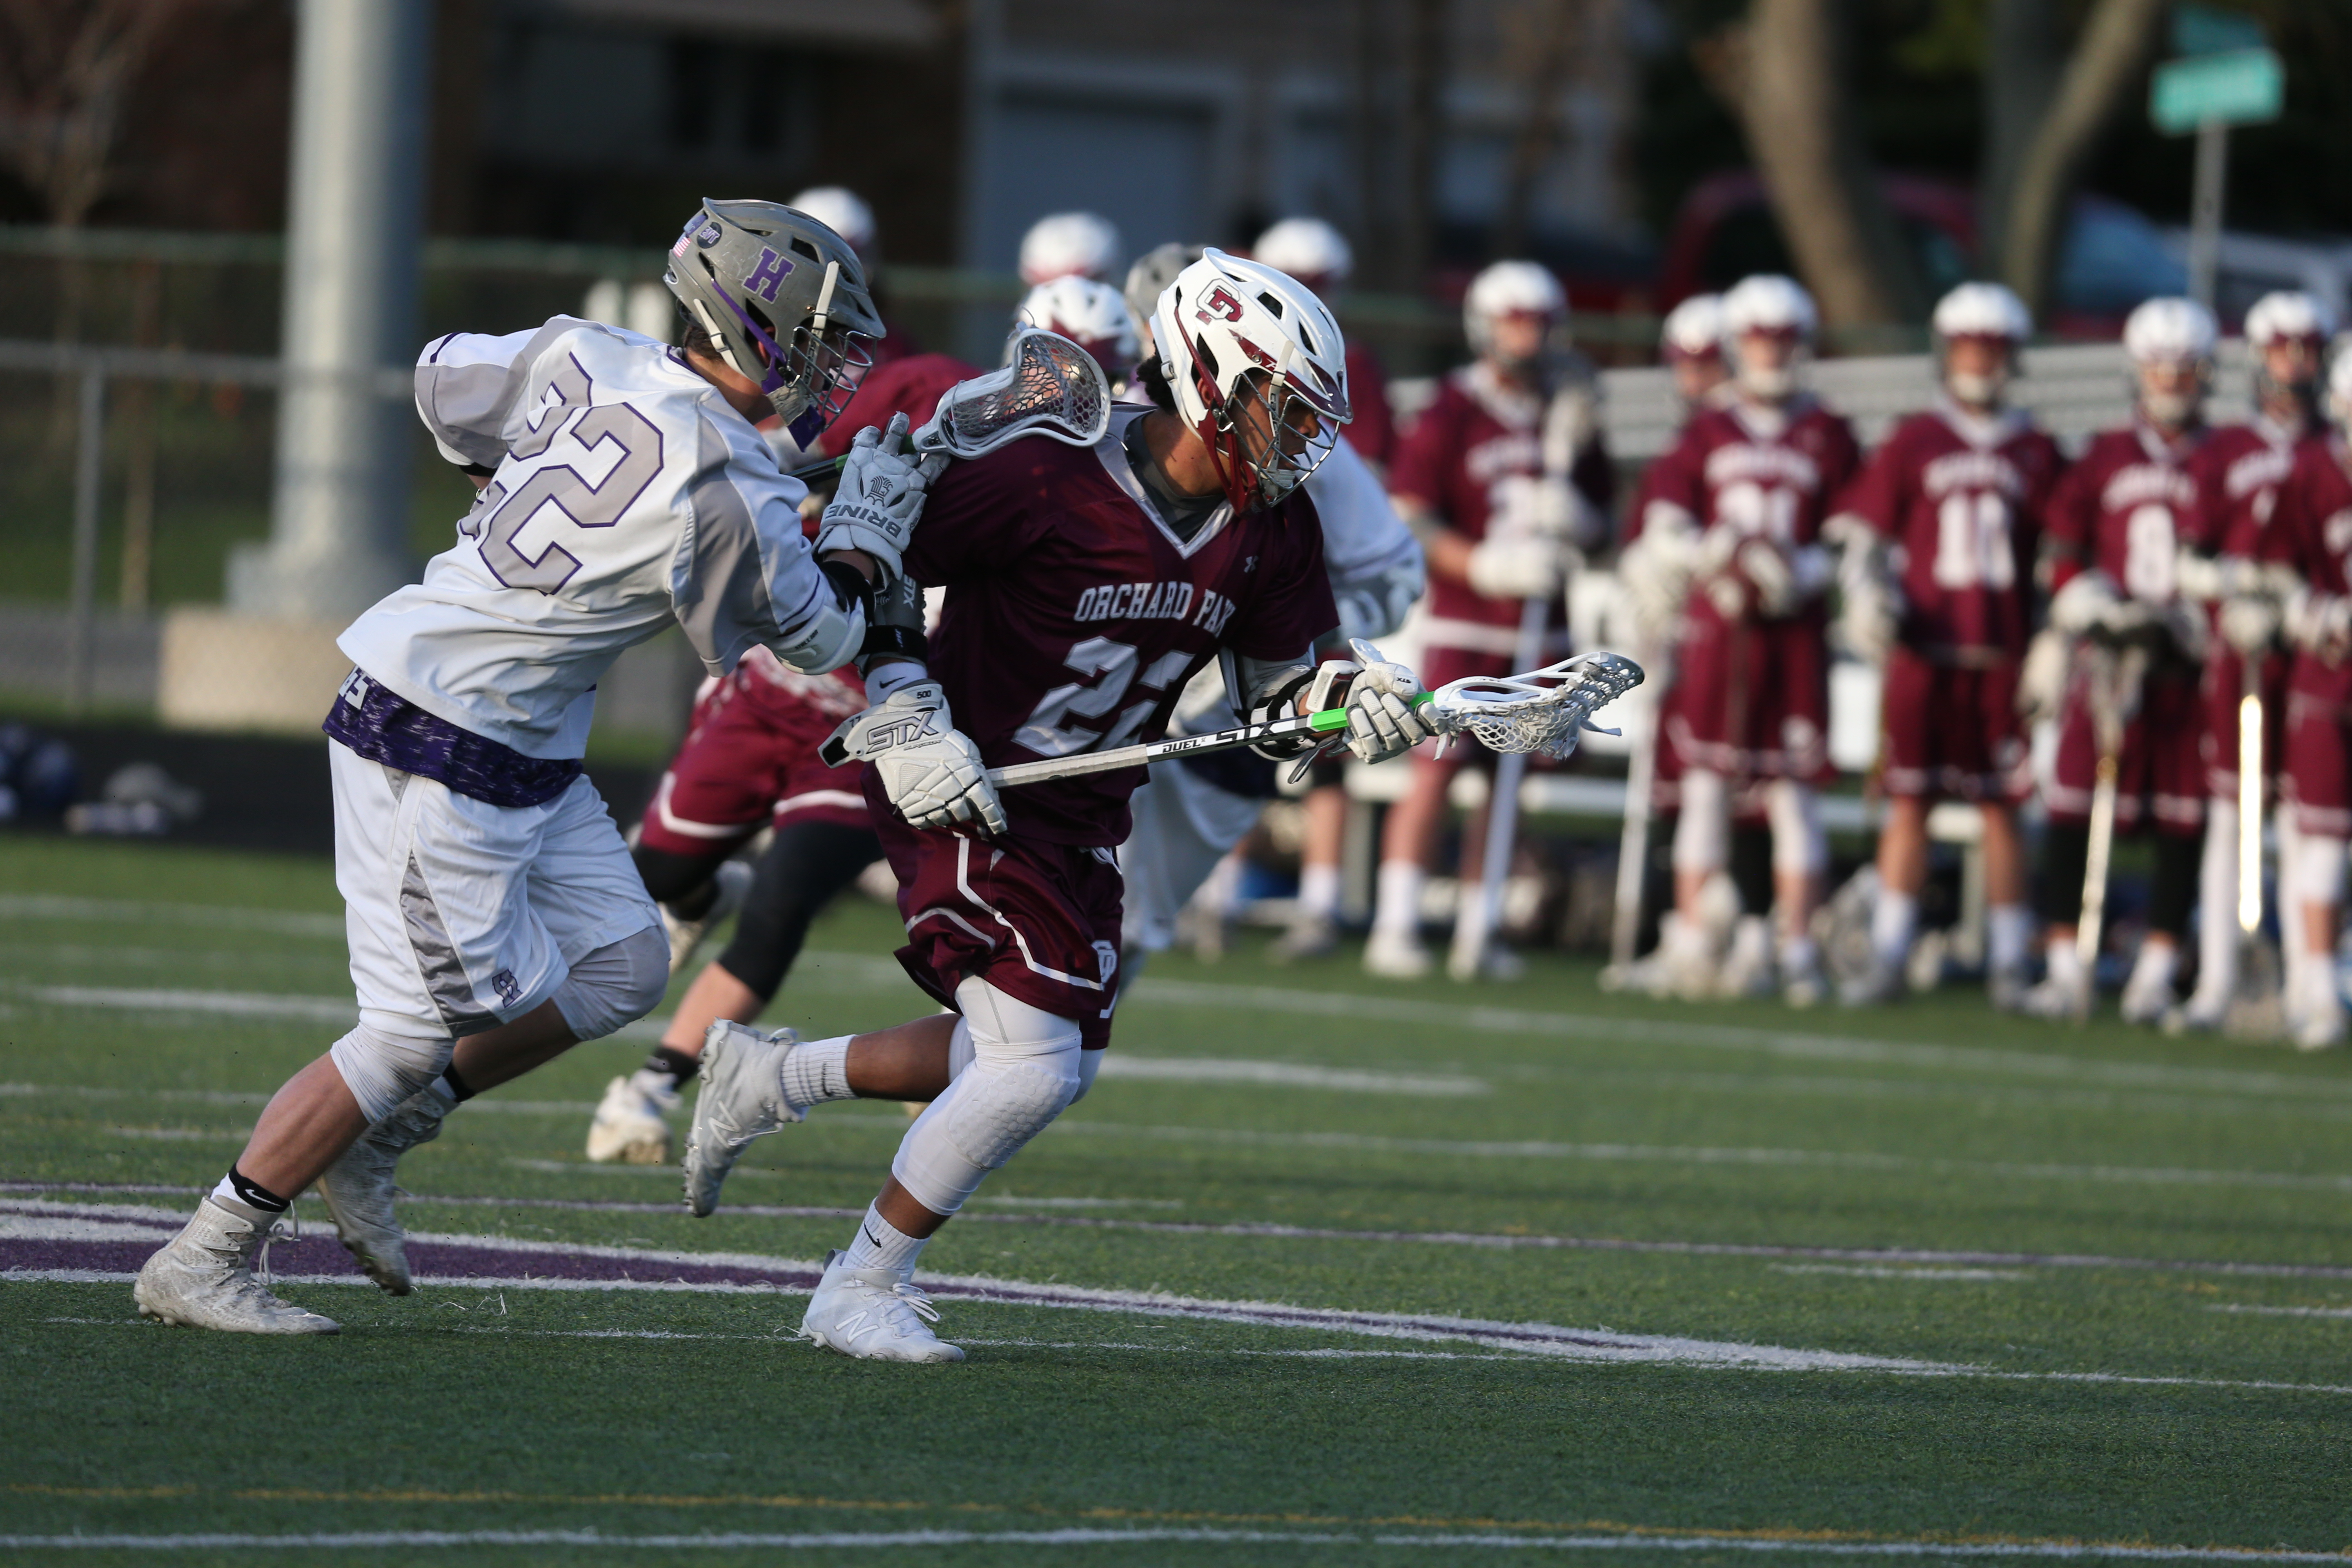 Orchard Park's Mitchell Streety pulls away with the ball from Hamburg's John Collins during Saturday's clash between reigning Section VI champions at Howe Field in Hamburg.  (James P. McCoy/Buffalo News)